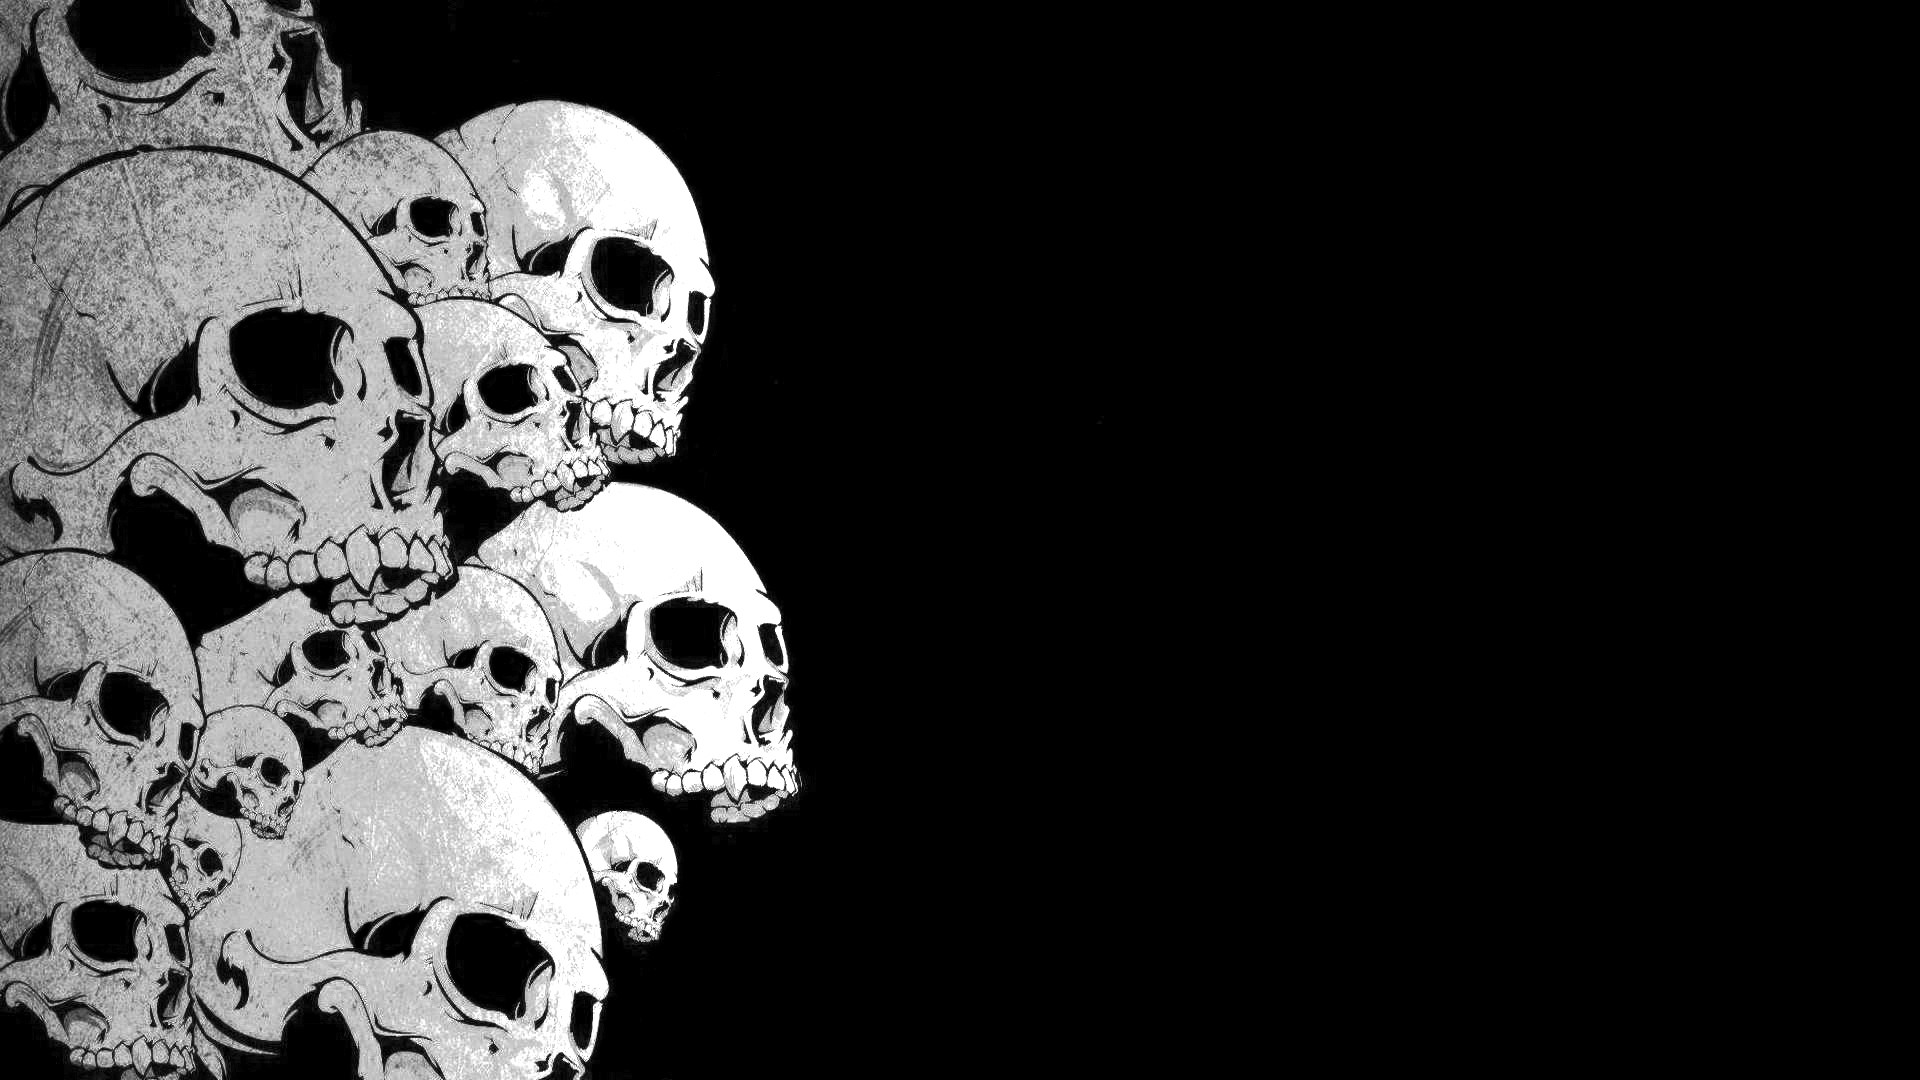 Res: 1920x1080, Magnificent Wallpapers Collection: Skull Desktop Wallpapers